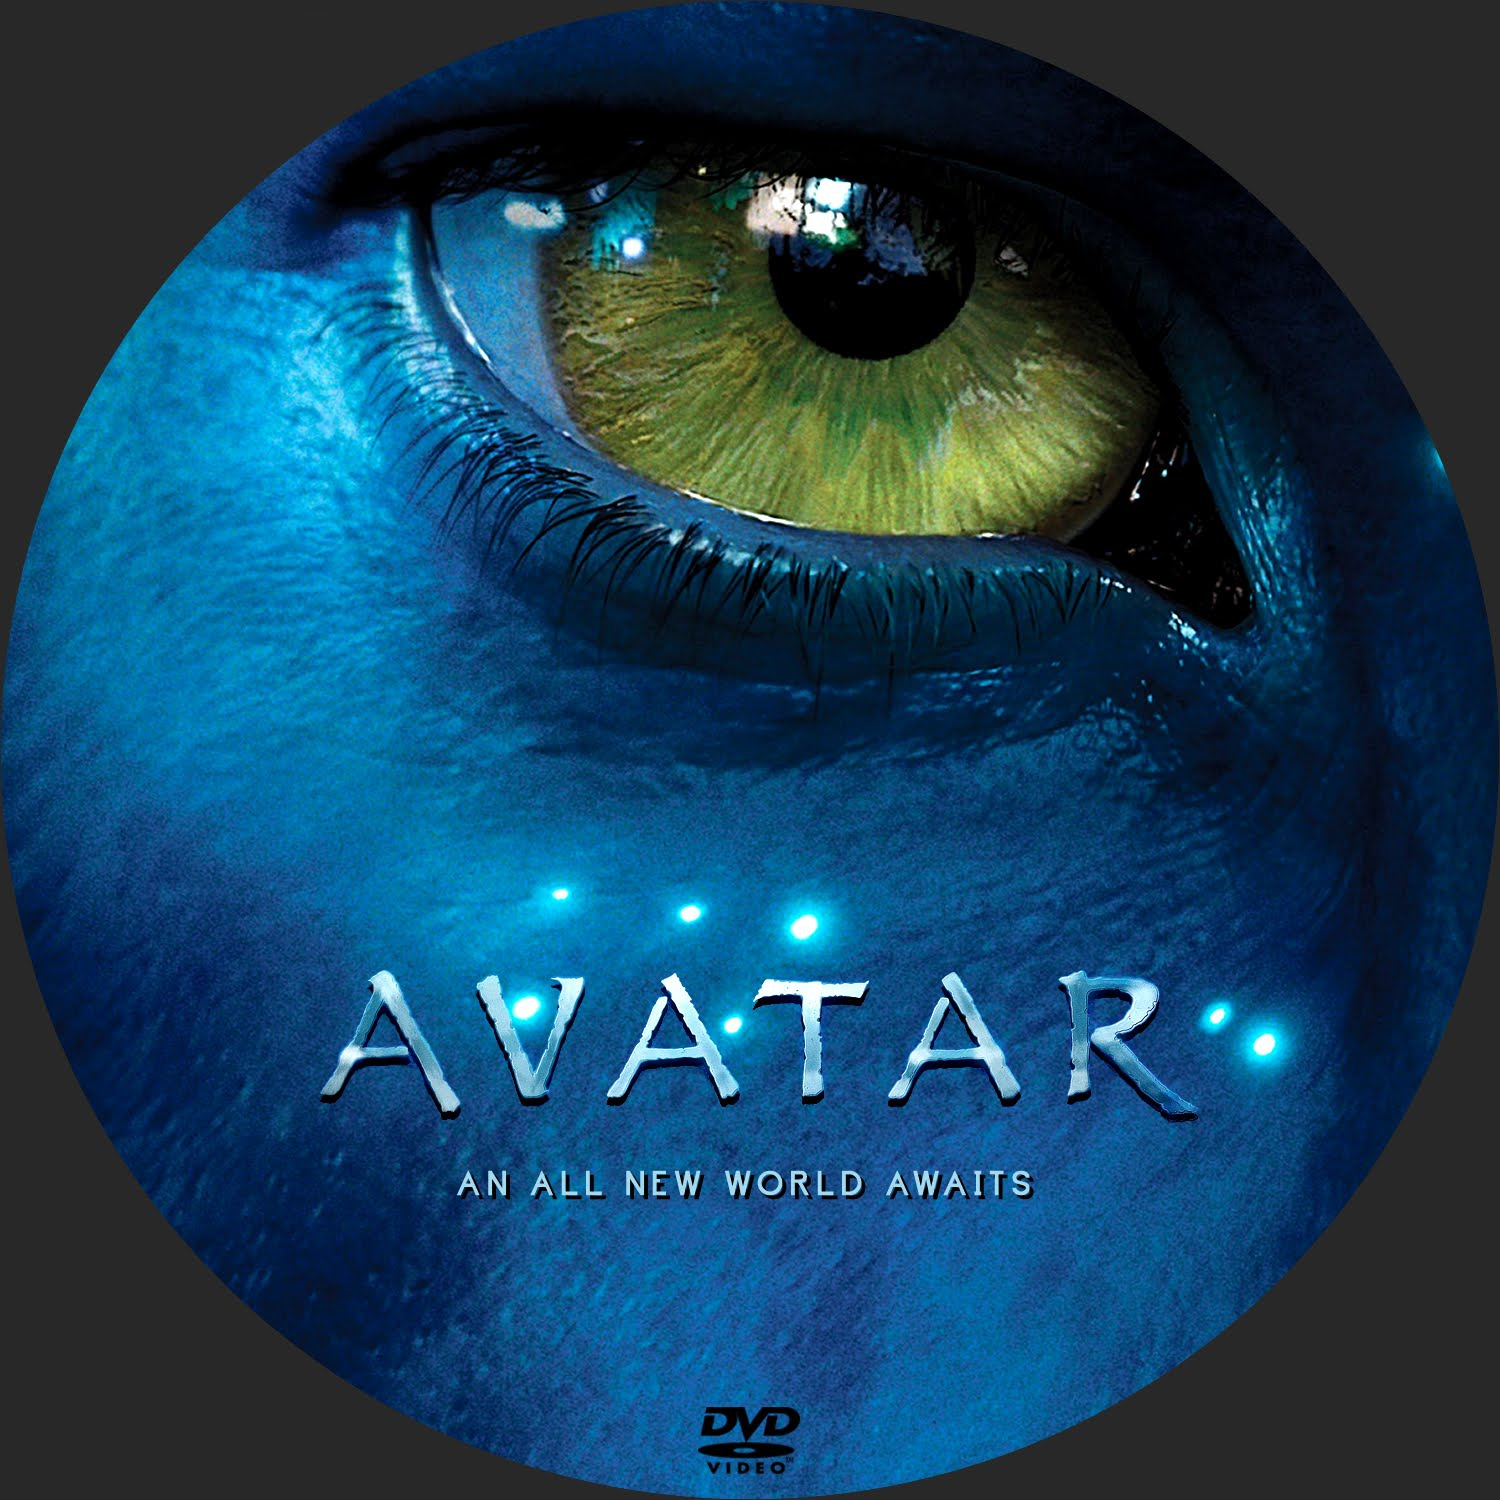 Avatar Dvd: DVD COVERS AND LABELS: Avatar